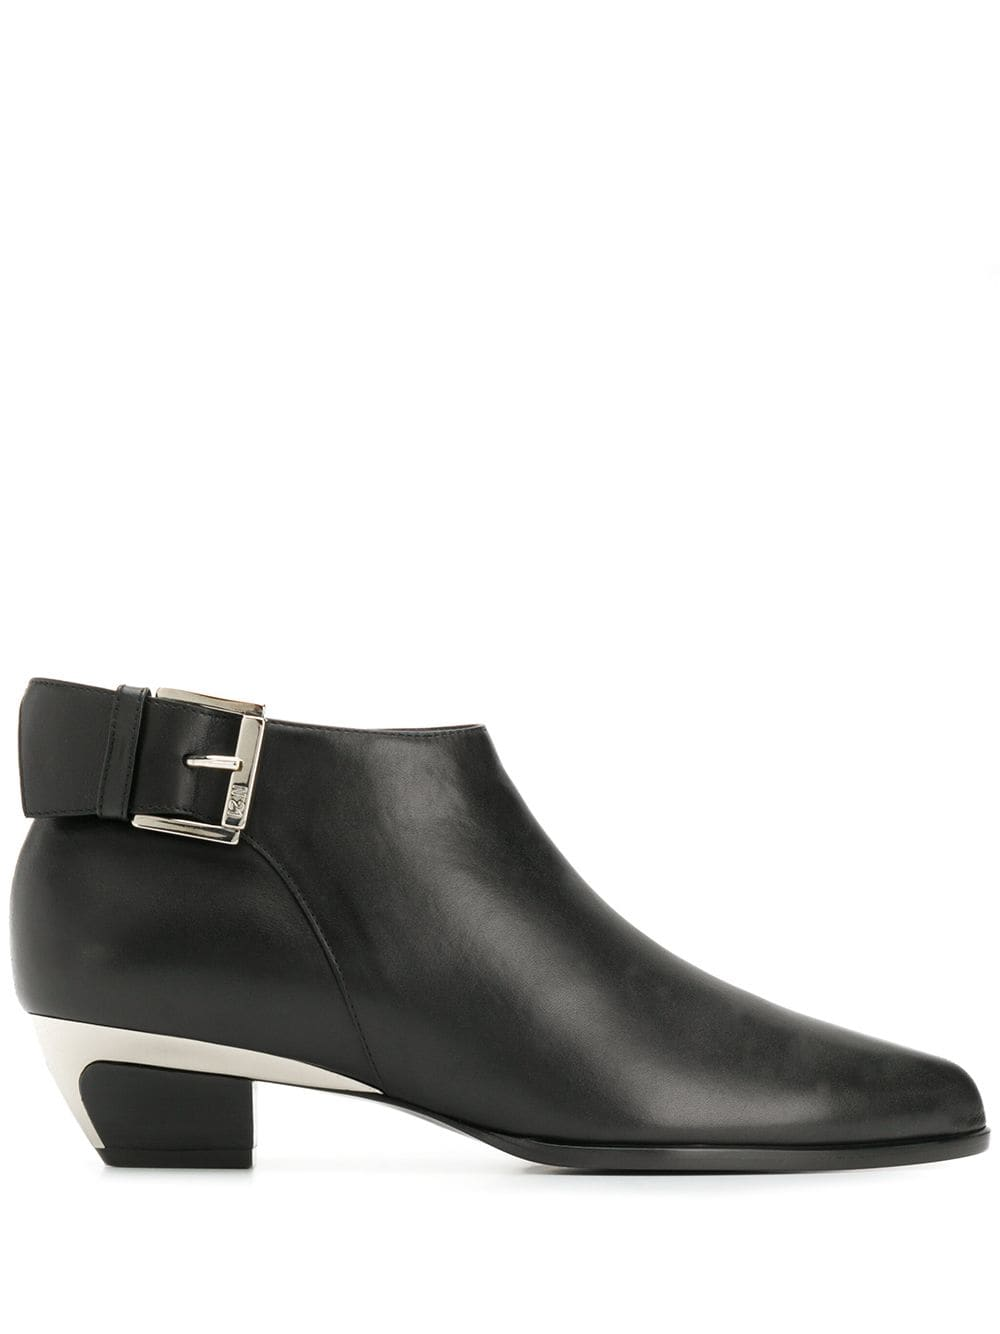 Nº21 ankle buckle boots - Black